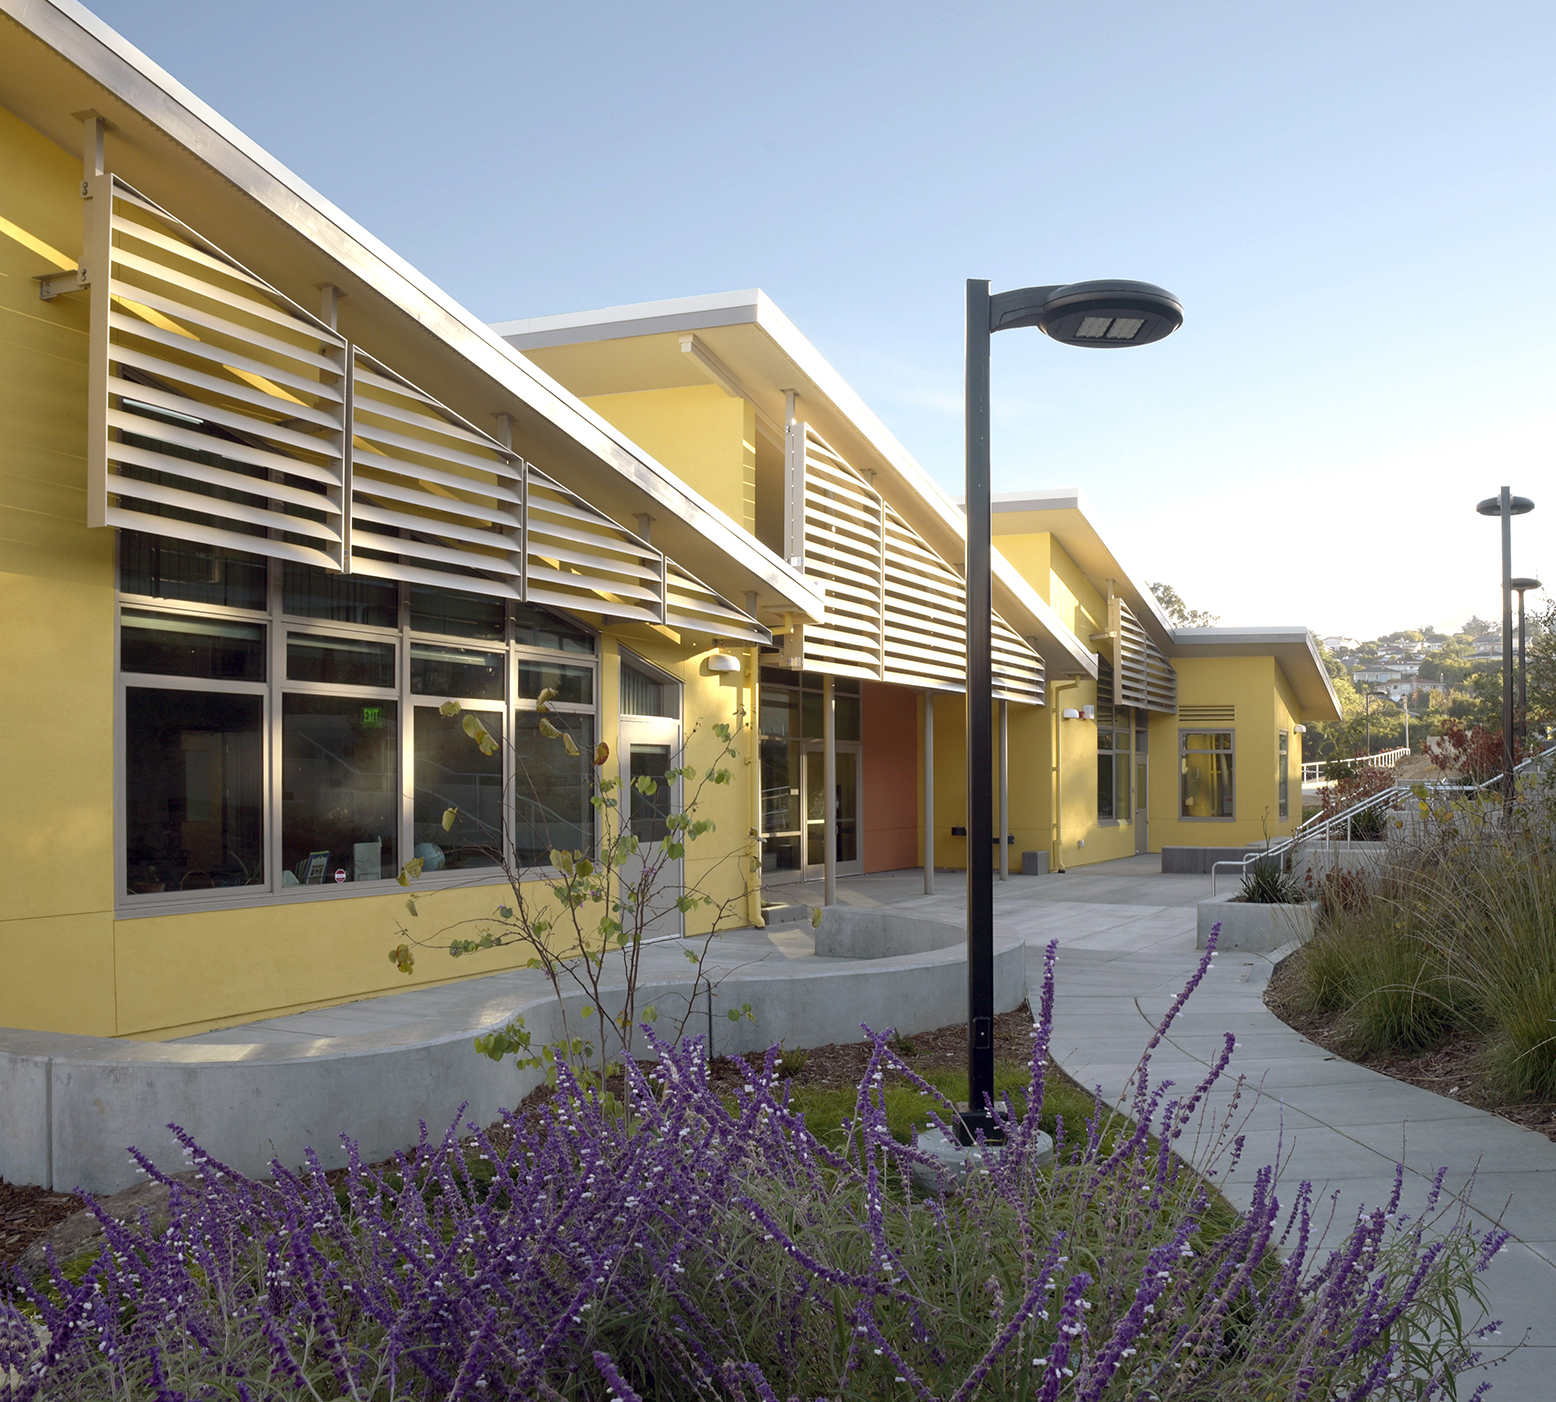 Outdoor learning areas at Burlingame Intermediate School Classroom Building.